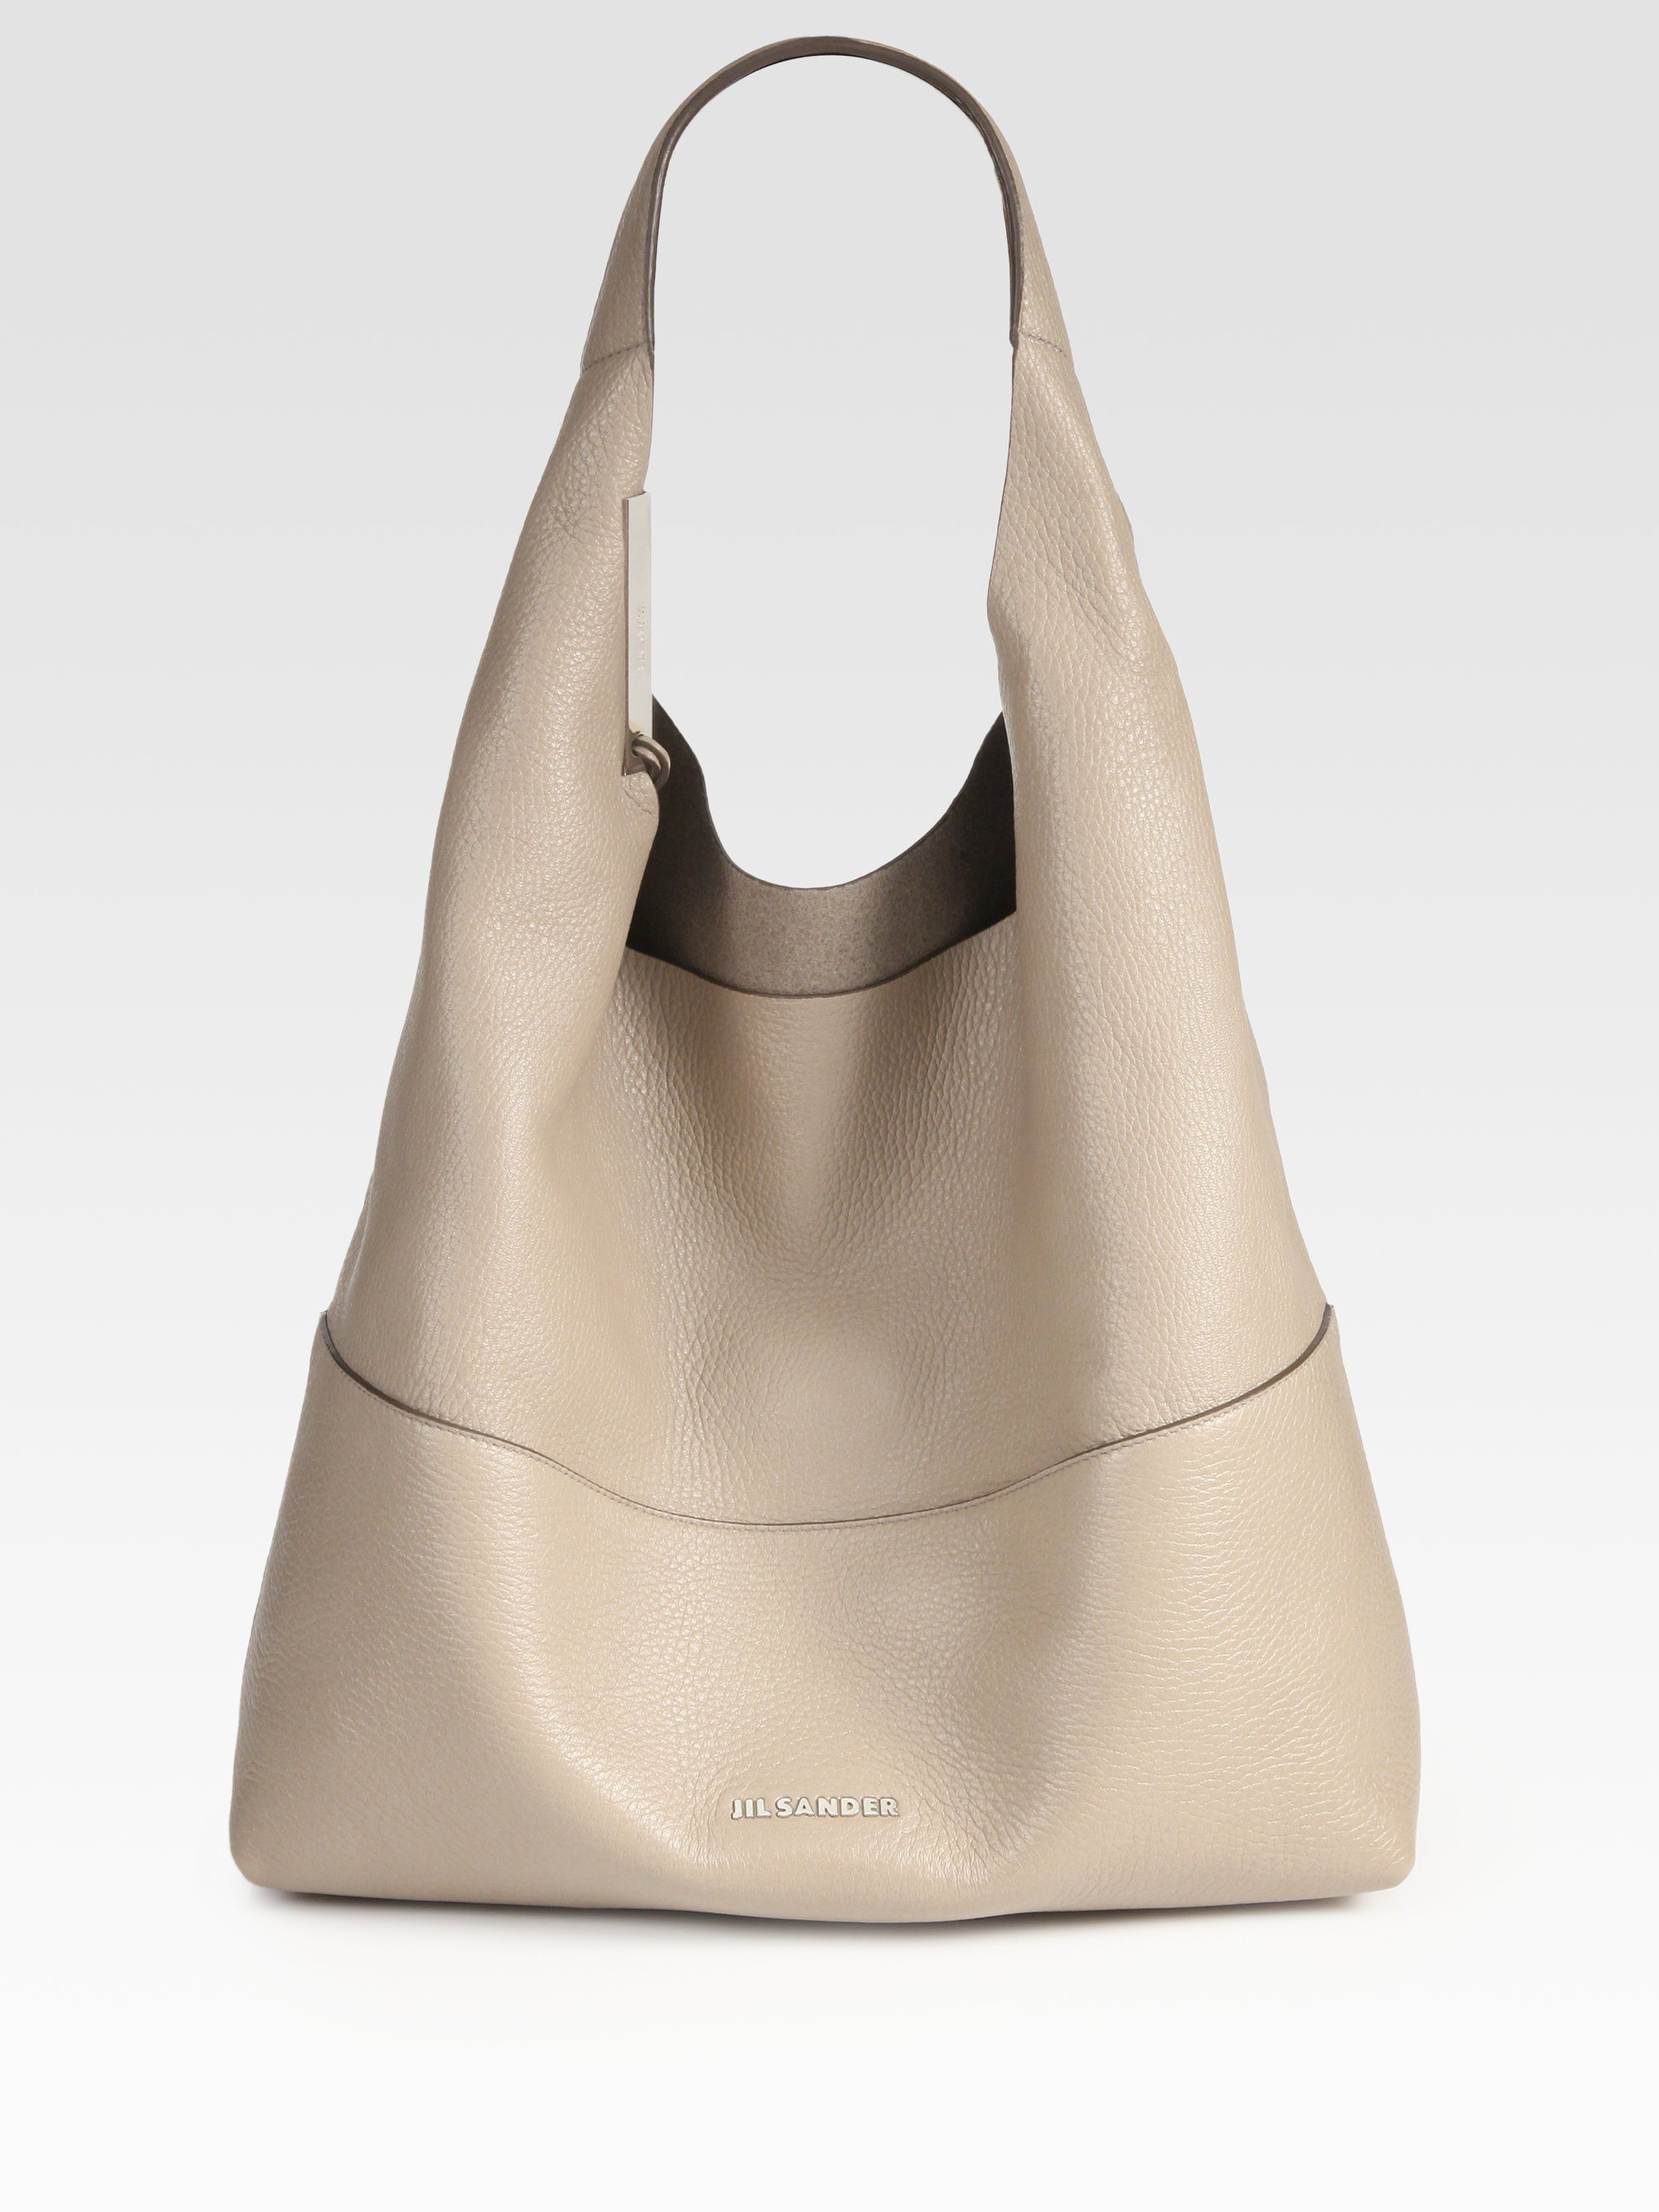 Jil sander Soft Shoulder Hobo in Natural | Lyst